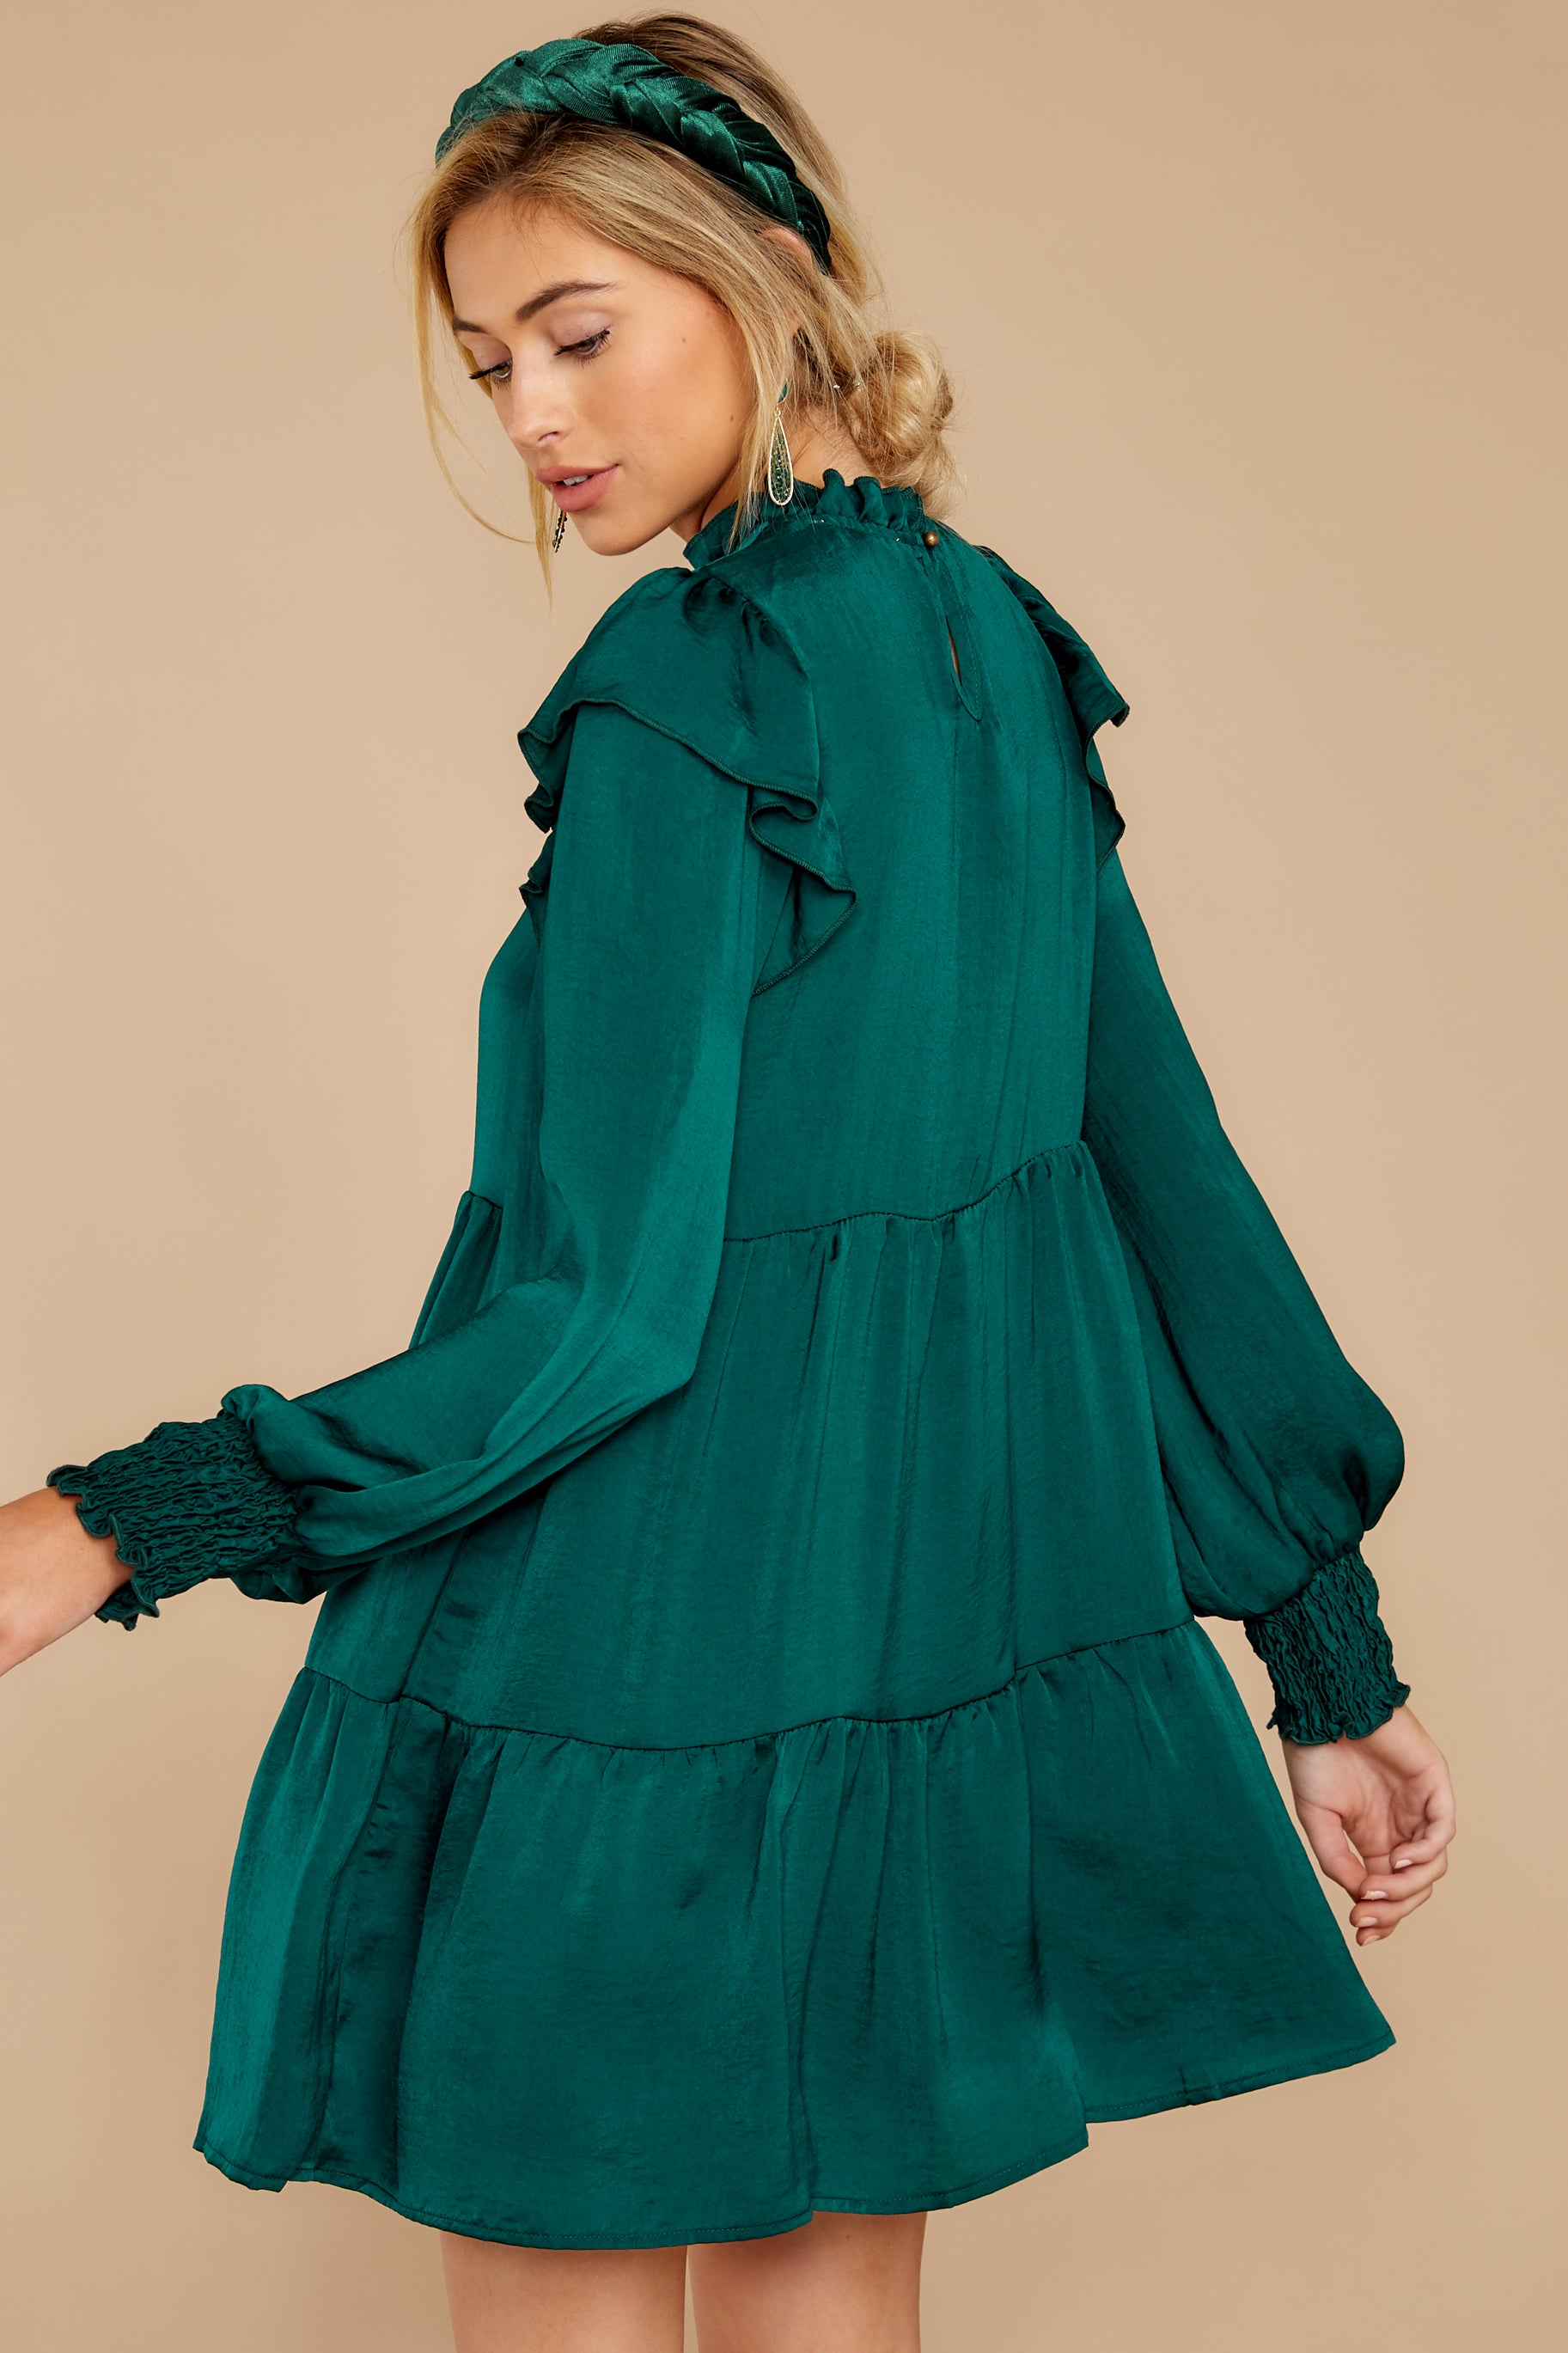 6 On My Level Emerald Green Dress at reddressboutique.com